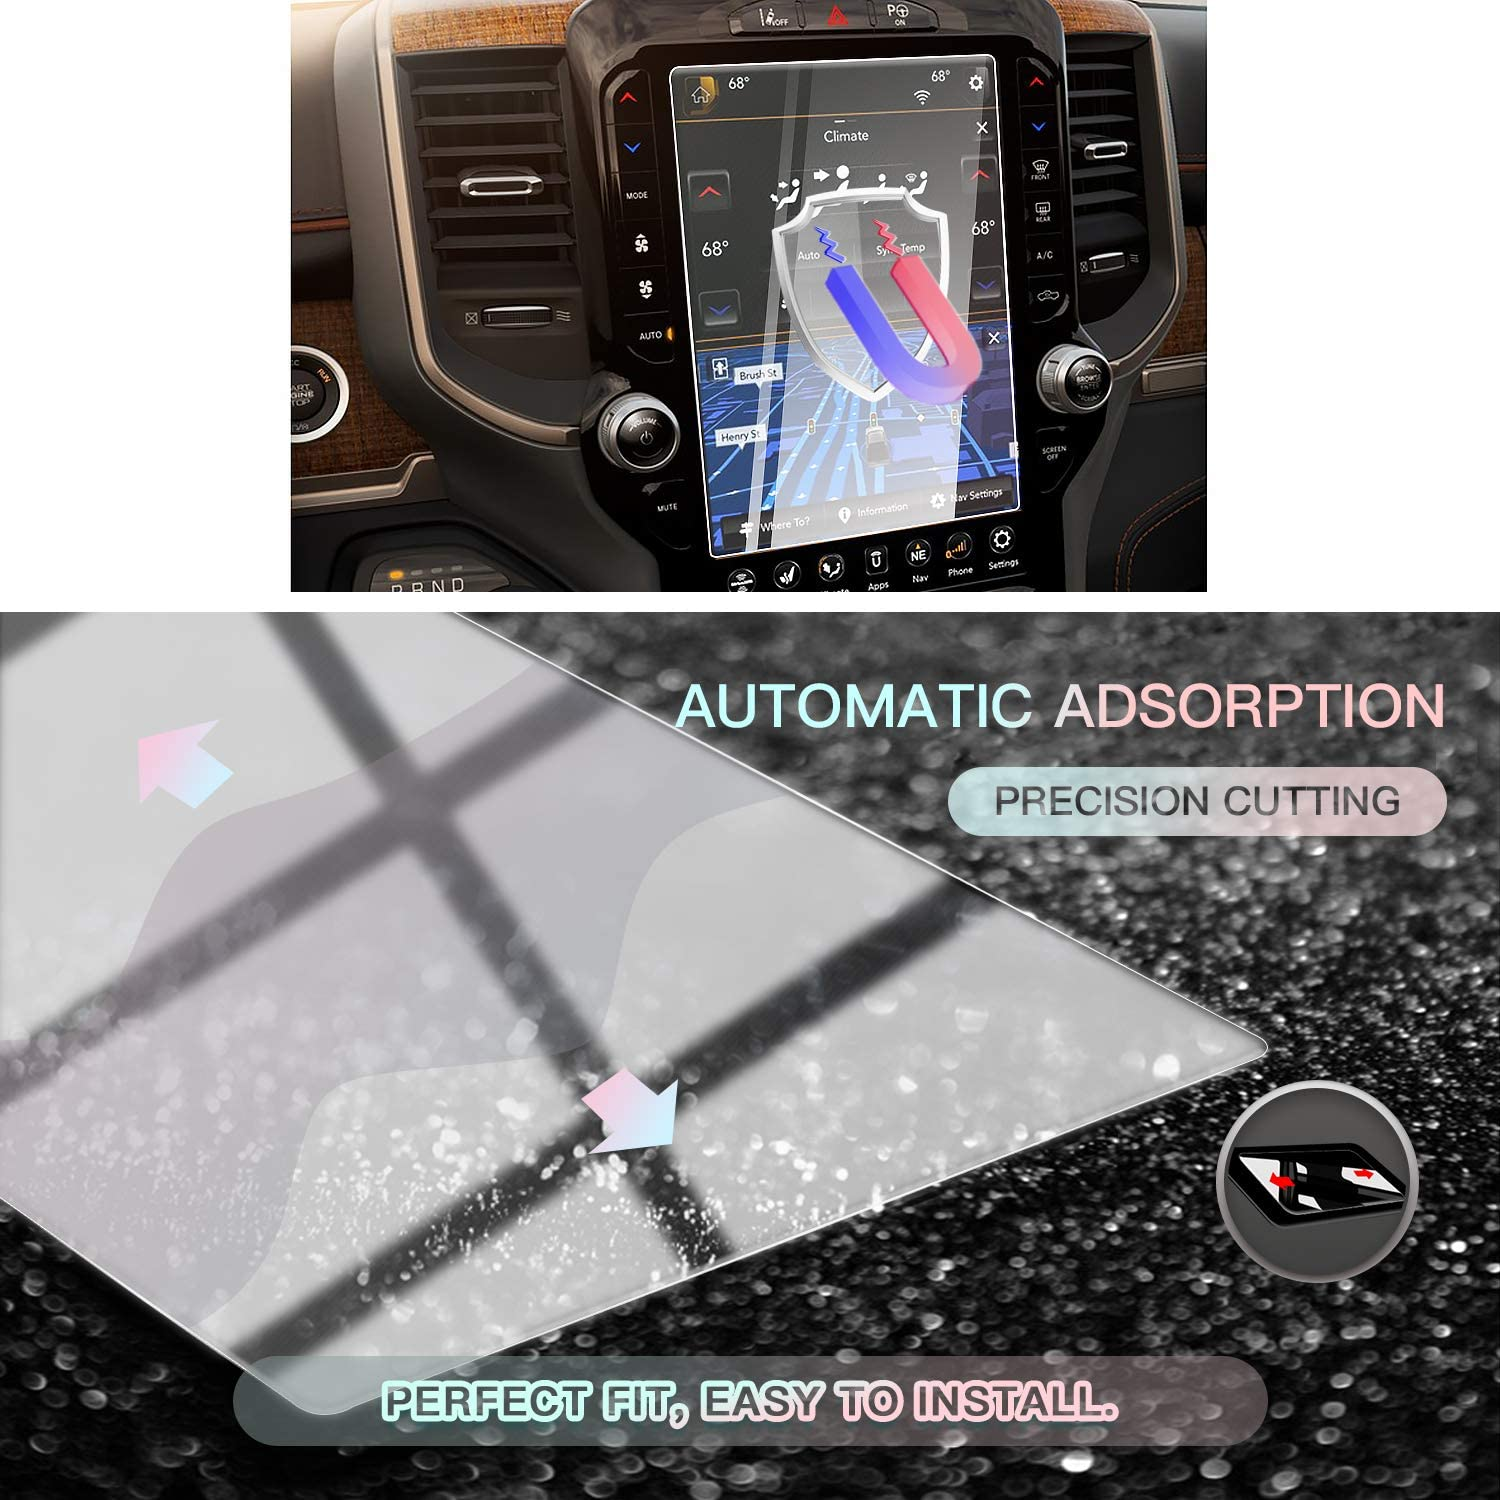 CDEFG Car Screen Protector Center Control Navigation Touch Screen Protector for 2019 2020 Dodge RAM 1500 2500 3500 Uconnect for 2019 Dodge RAM 12 inch Tempered Glass HD Scratch Resistance